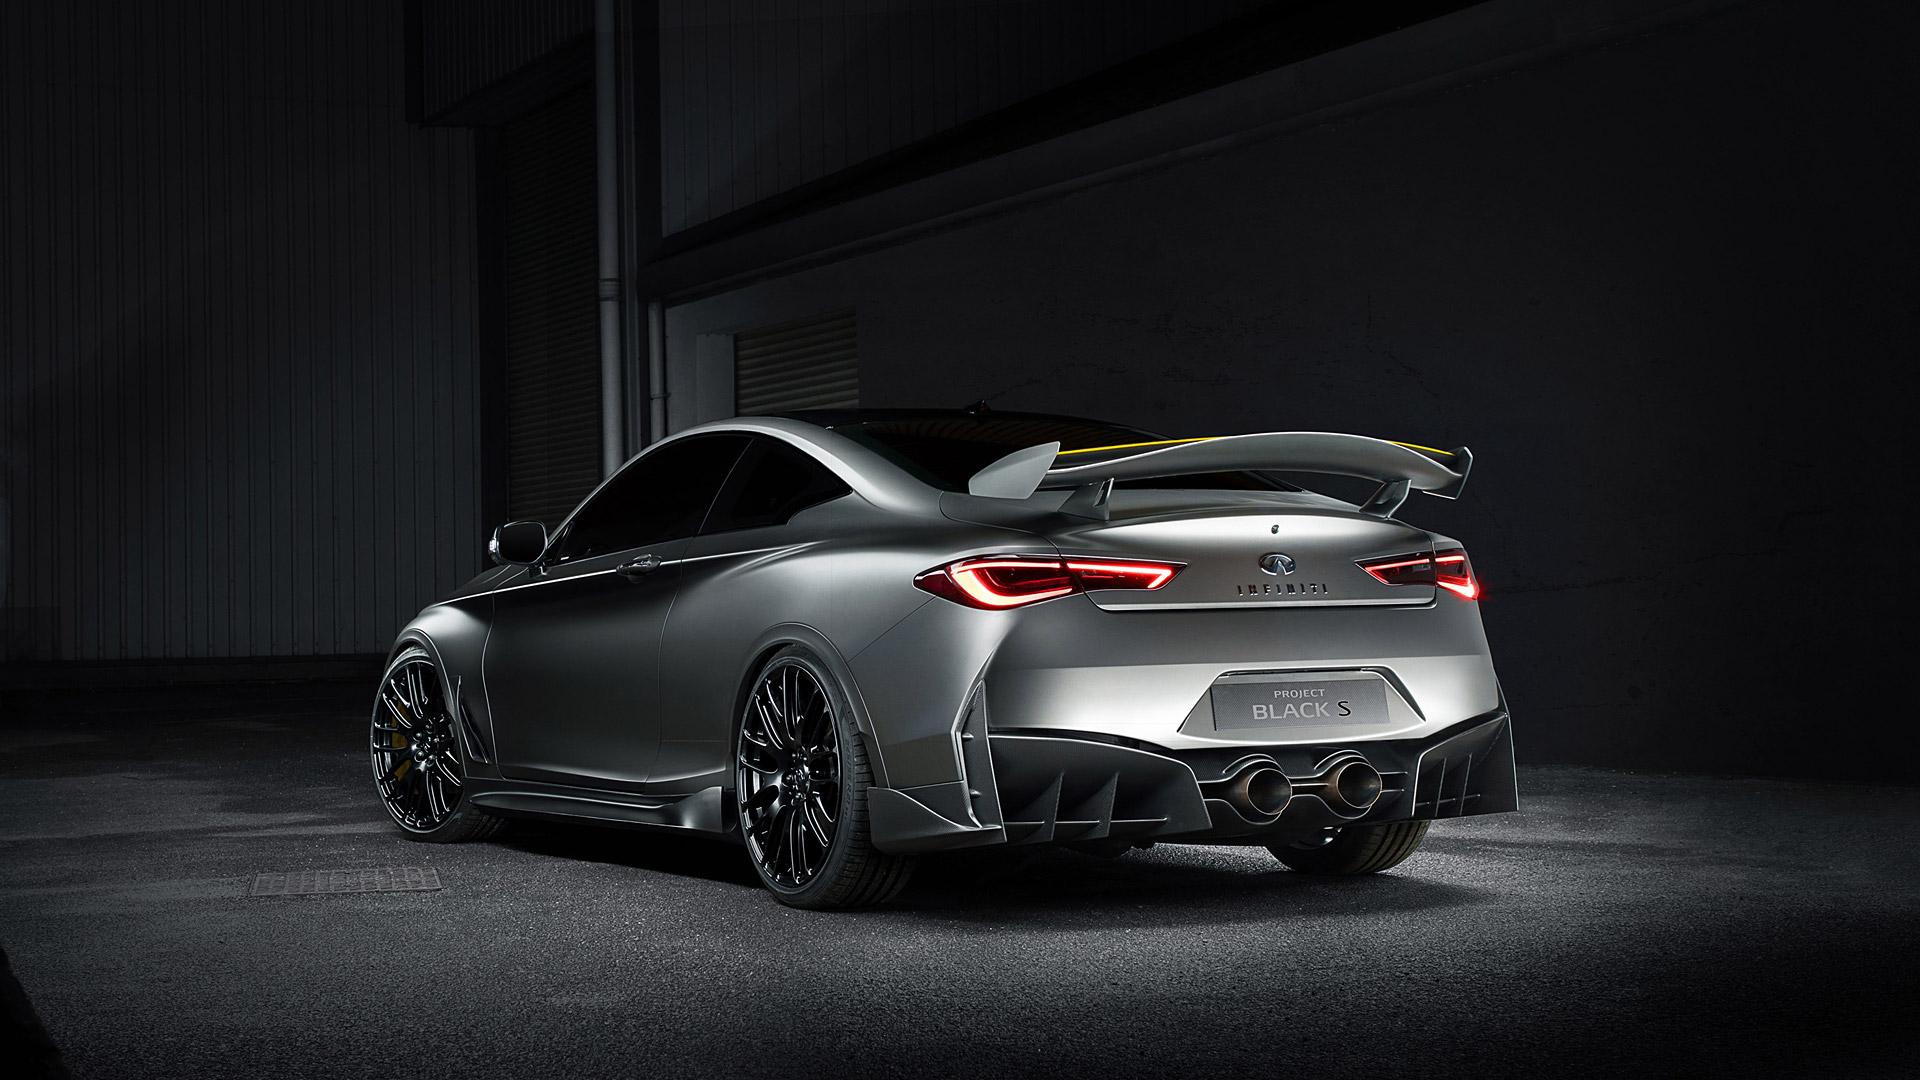 2017 Infiniti Q60 Project Black S Concept Wallpapers HD Images 1920x1080